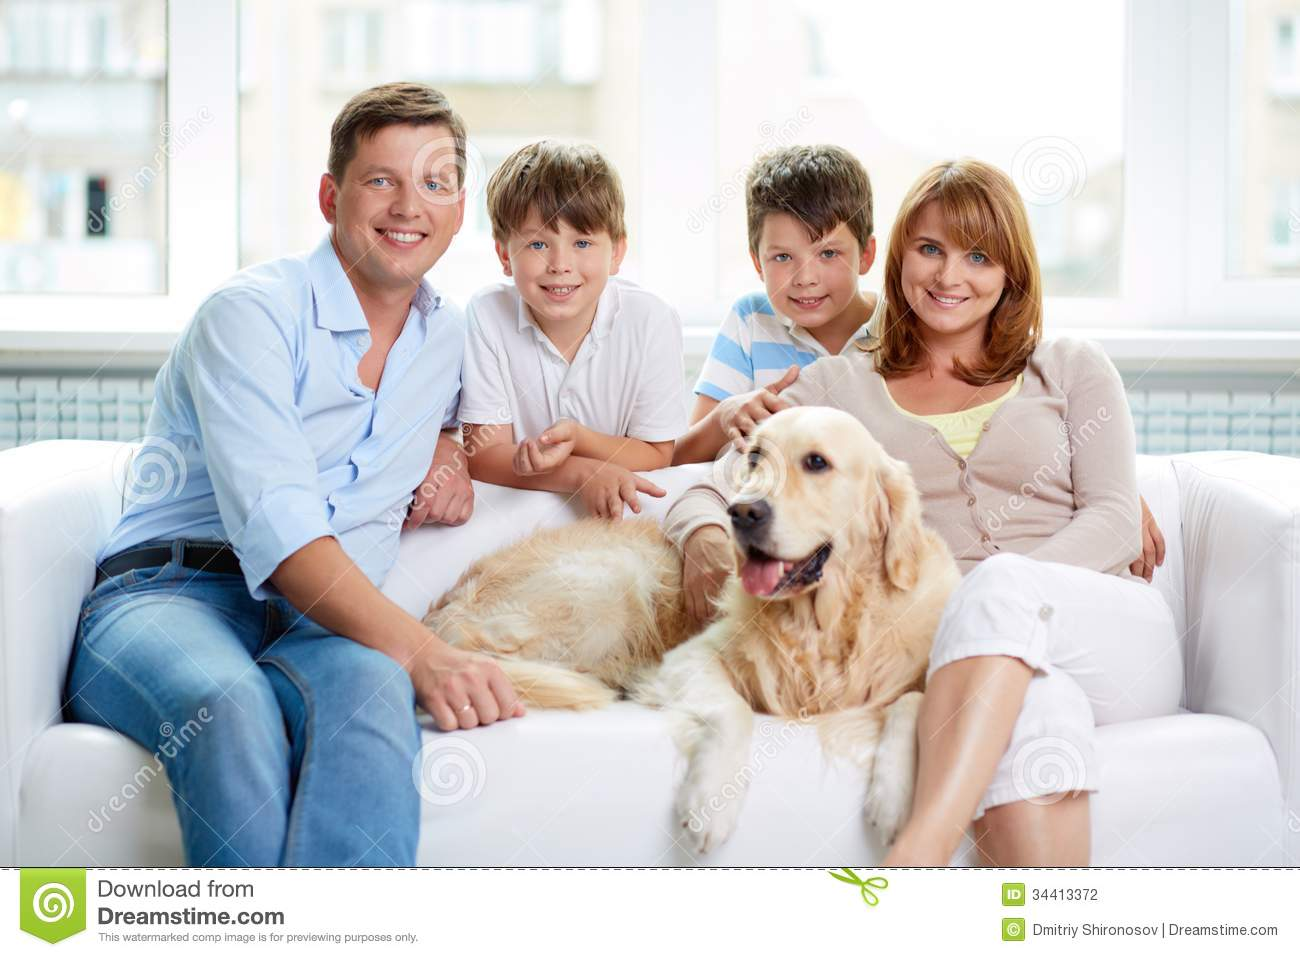 Vermont Greenhouse additionally Hepburn Crystalline Dog Bed Brown p 906 moreover Dog Waste Signage Program likewise Bunk Bed With Trundle 4256 besides Stock Photography Home Rest Portrait Happy Family Their Pet Having Image34413372. on pet friendly home design